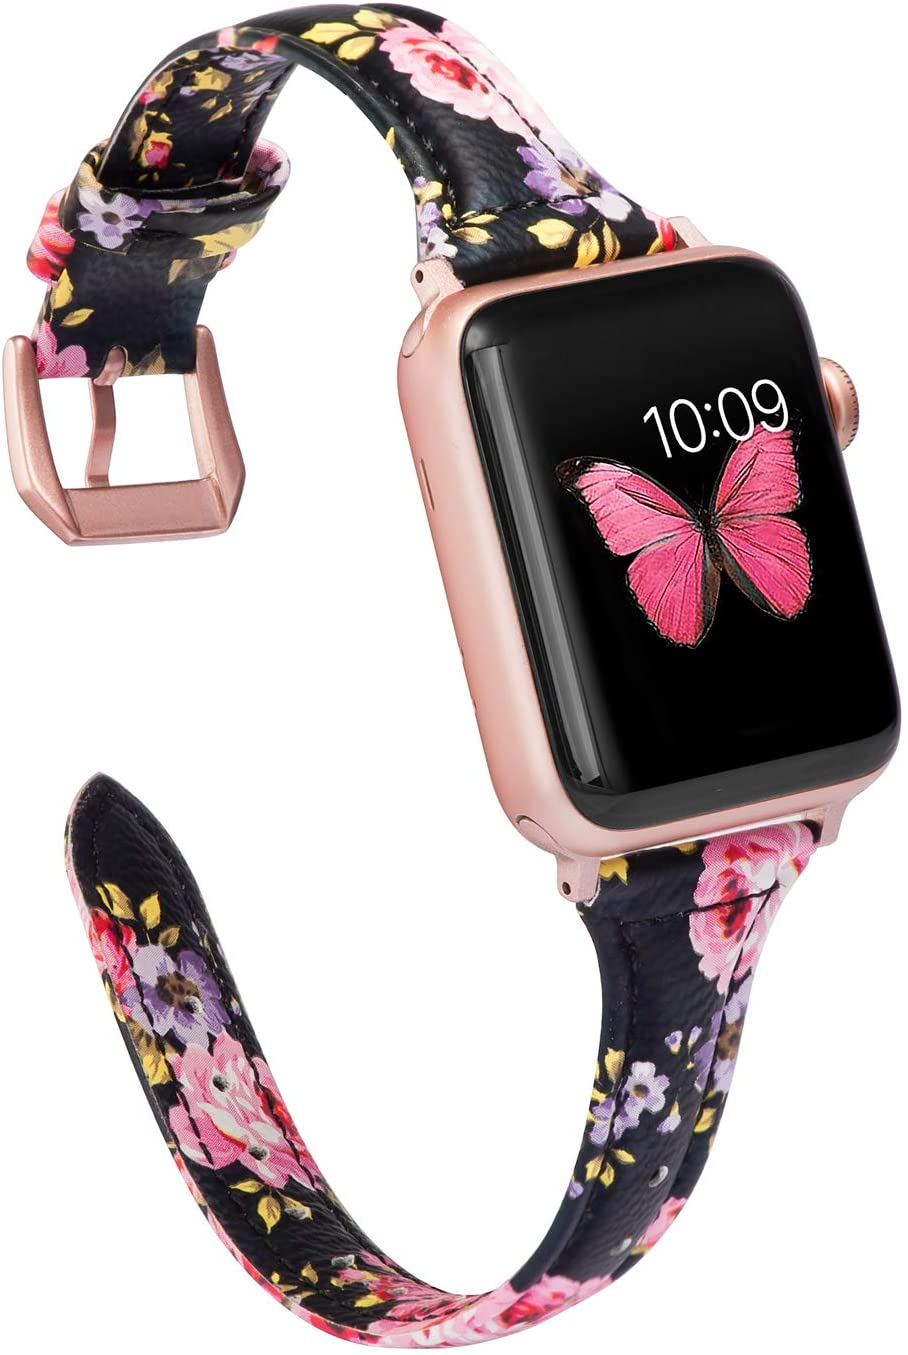 Wearlizer Thin Leather Black Pink Floral Compatible with Apple Watch Band 38mm 40mm for iWatch SE Womens Top Grain Leather Slim Strap, Female Flower Wristband (Rose Gold Clasp) Series 6 5 4 3 2 1